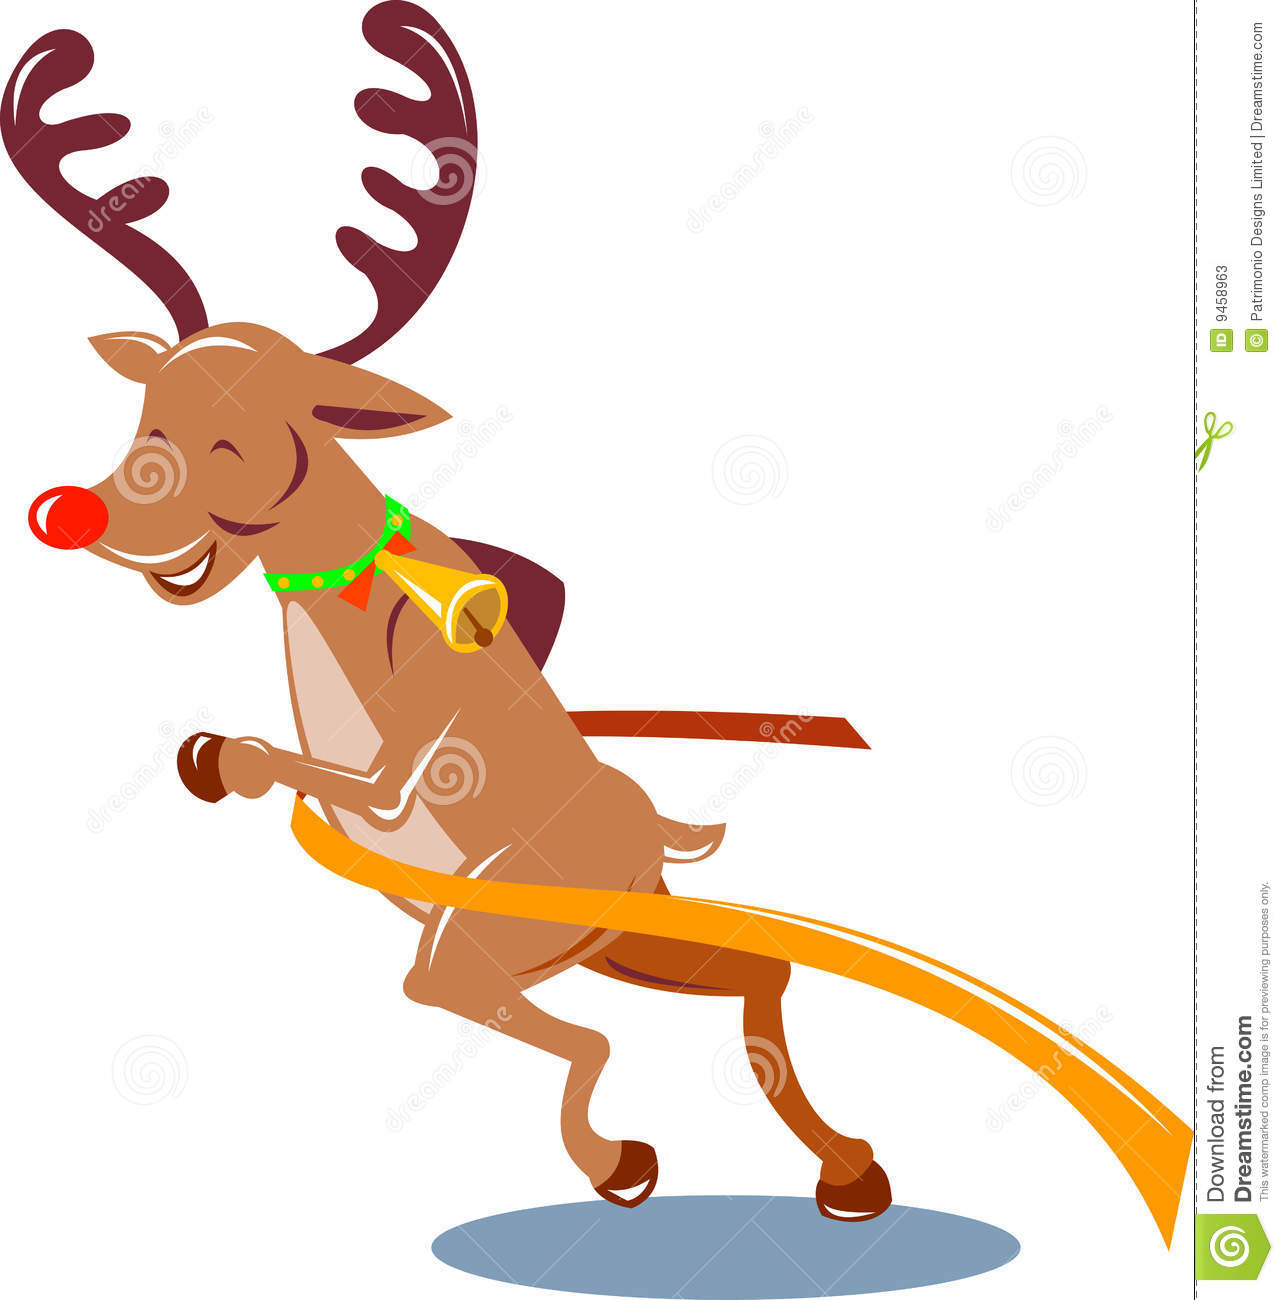 Free Clipart Rudolph The Red Nosed Reindeer Free Download Best